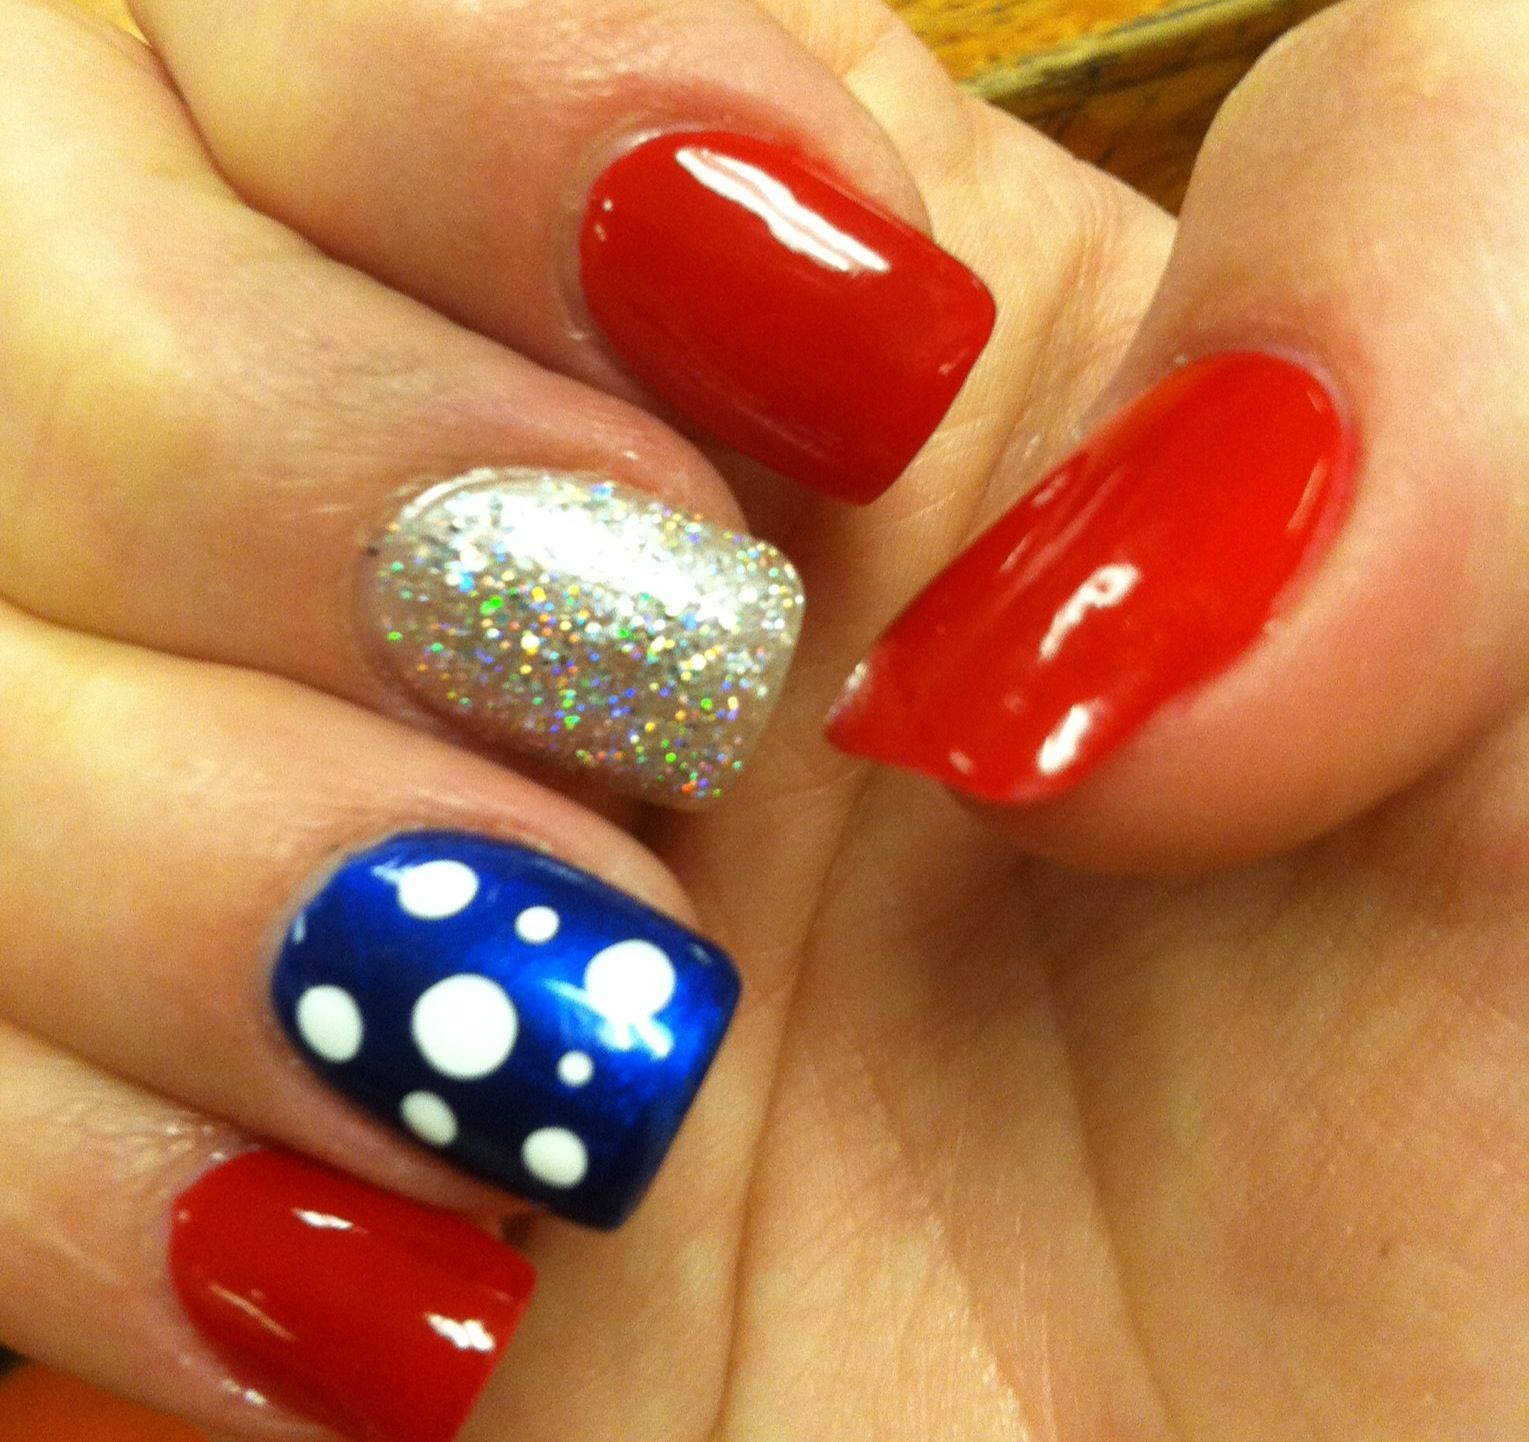 Pin By Heather Chapman On Nails Blue Gel Nails Red Nail Designs Painted Acrylic Nails